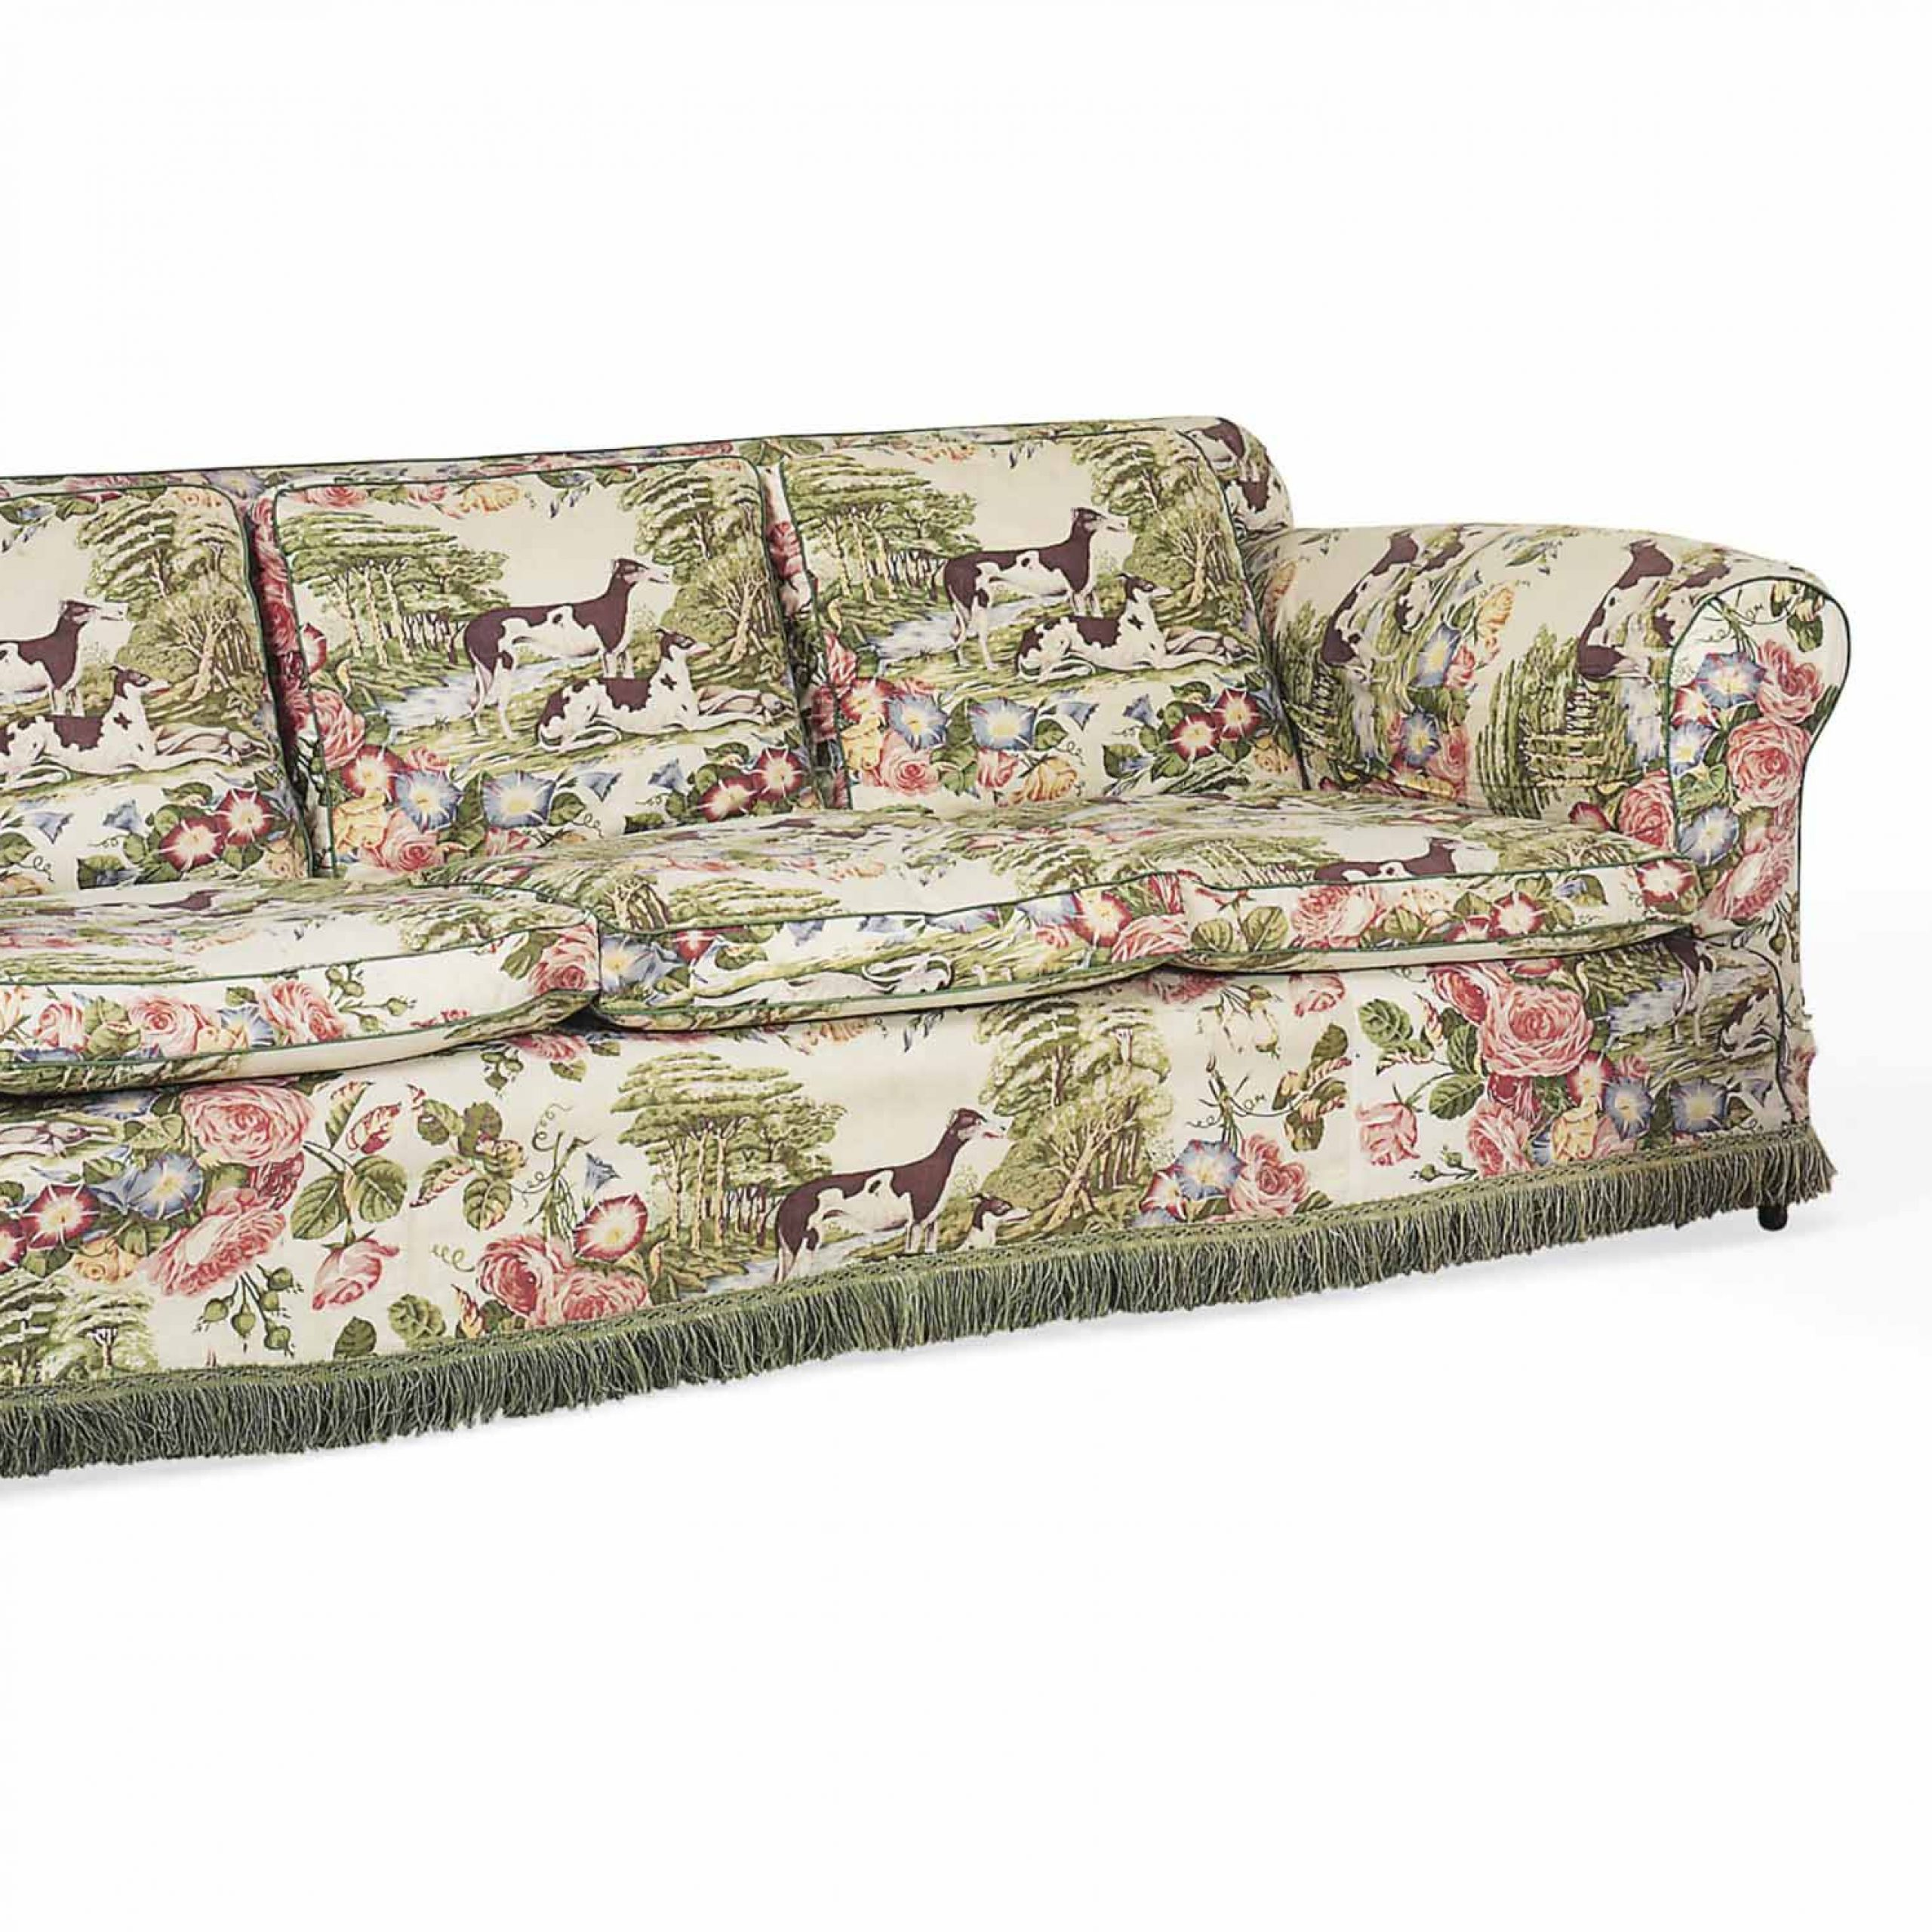 Chintz Sofa Chintz Upholstered Sofa With Matching Chair Lg Intended For Chintz Covered Sofas (View 8 of 15)